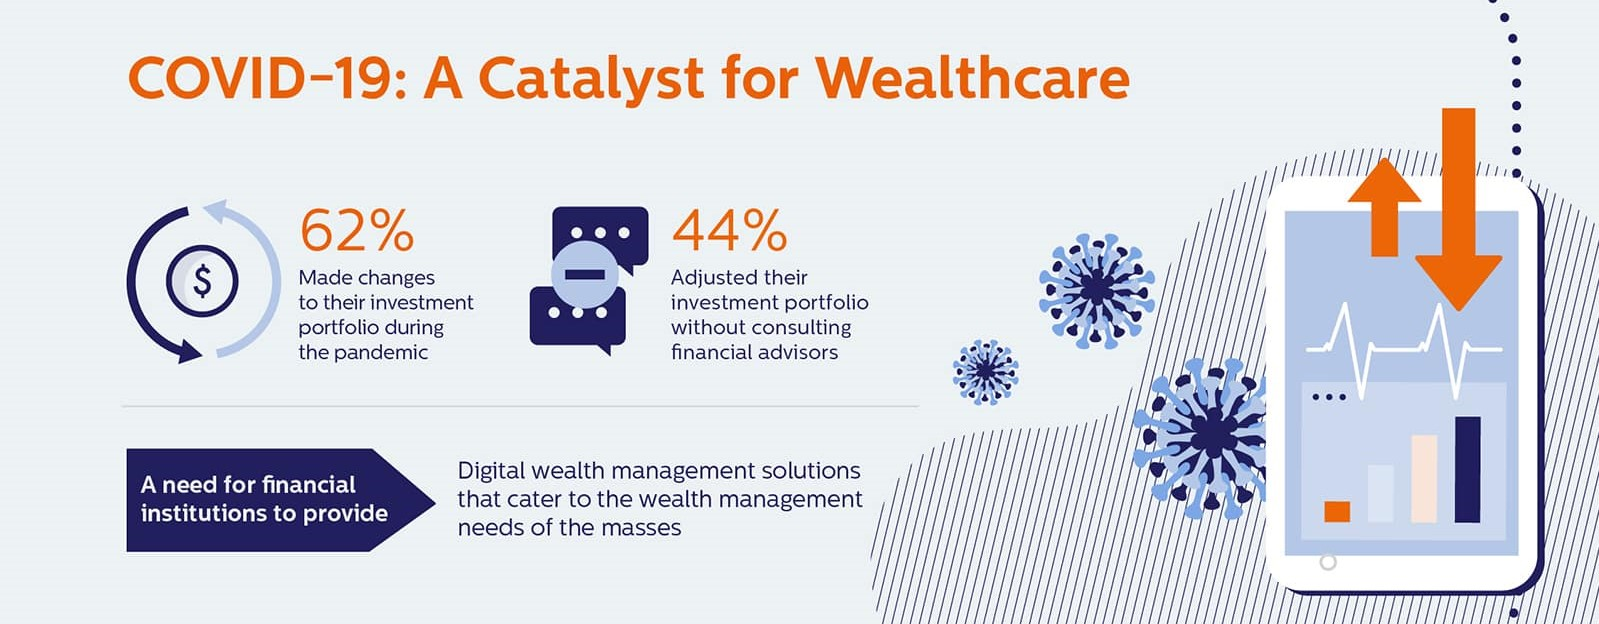 COVID-19 as a Catalyst for Wealthcare